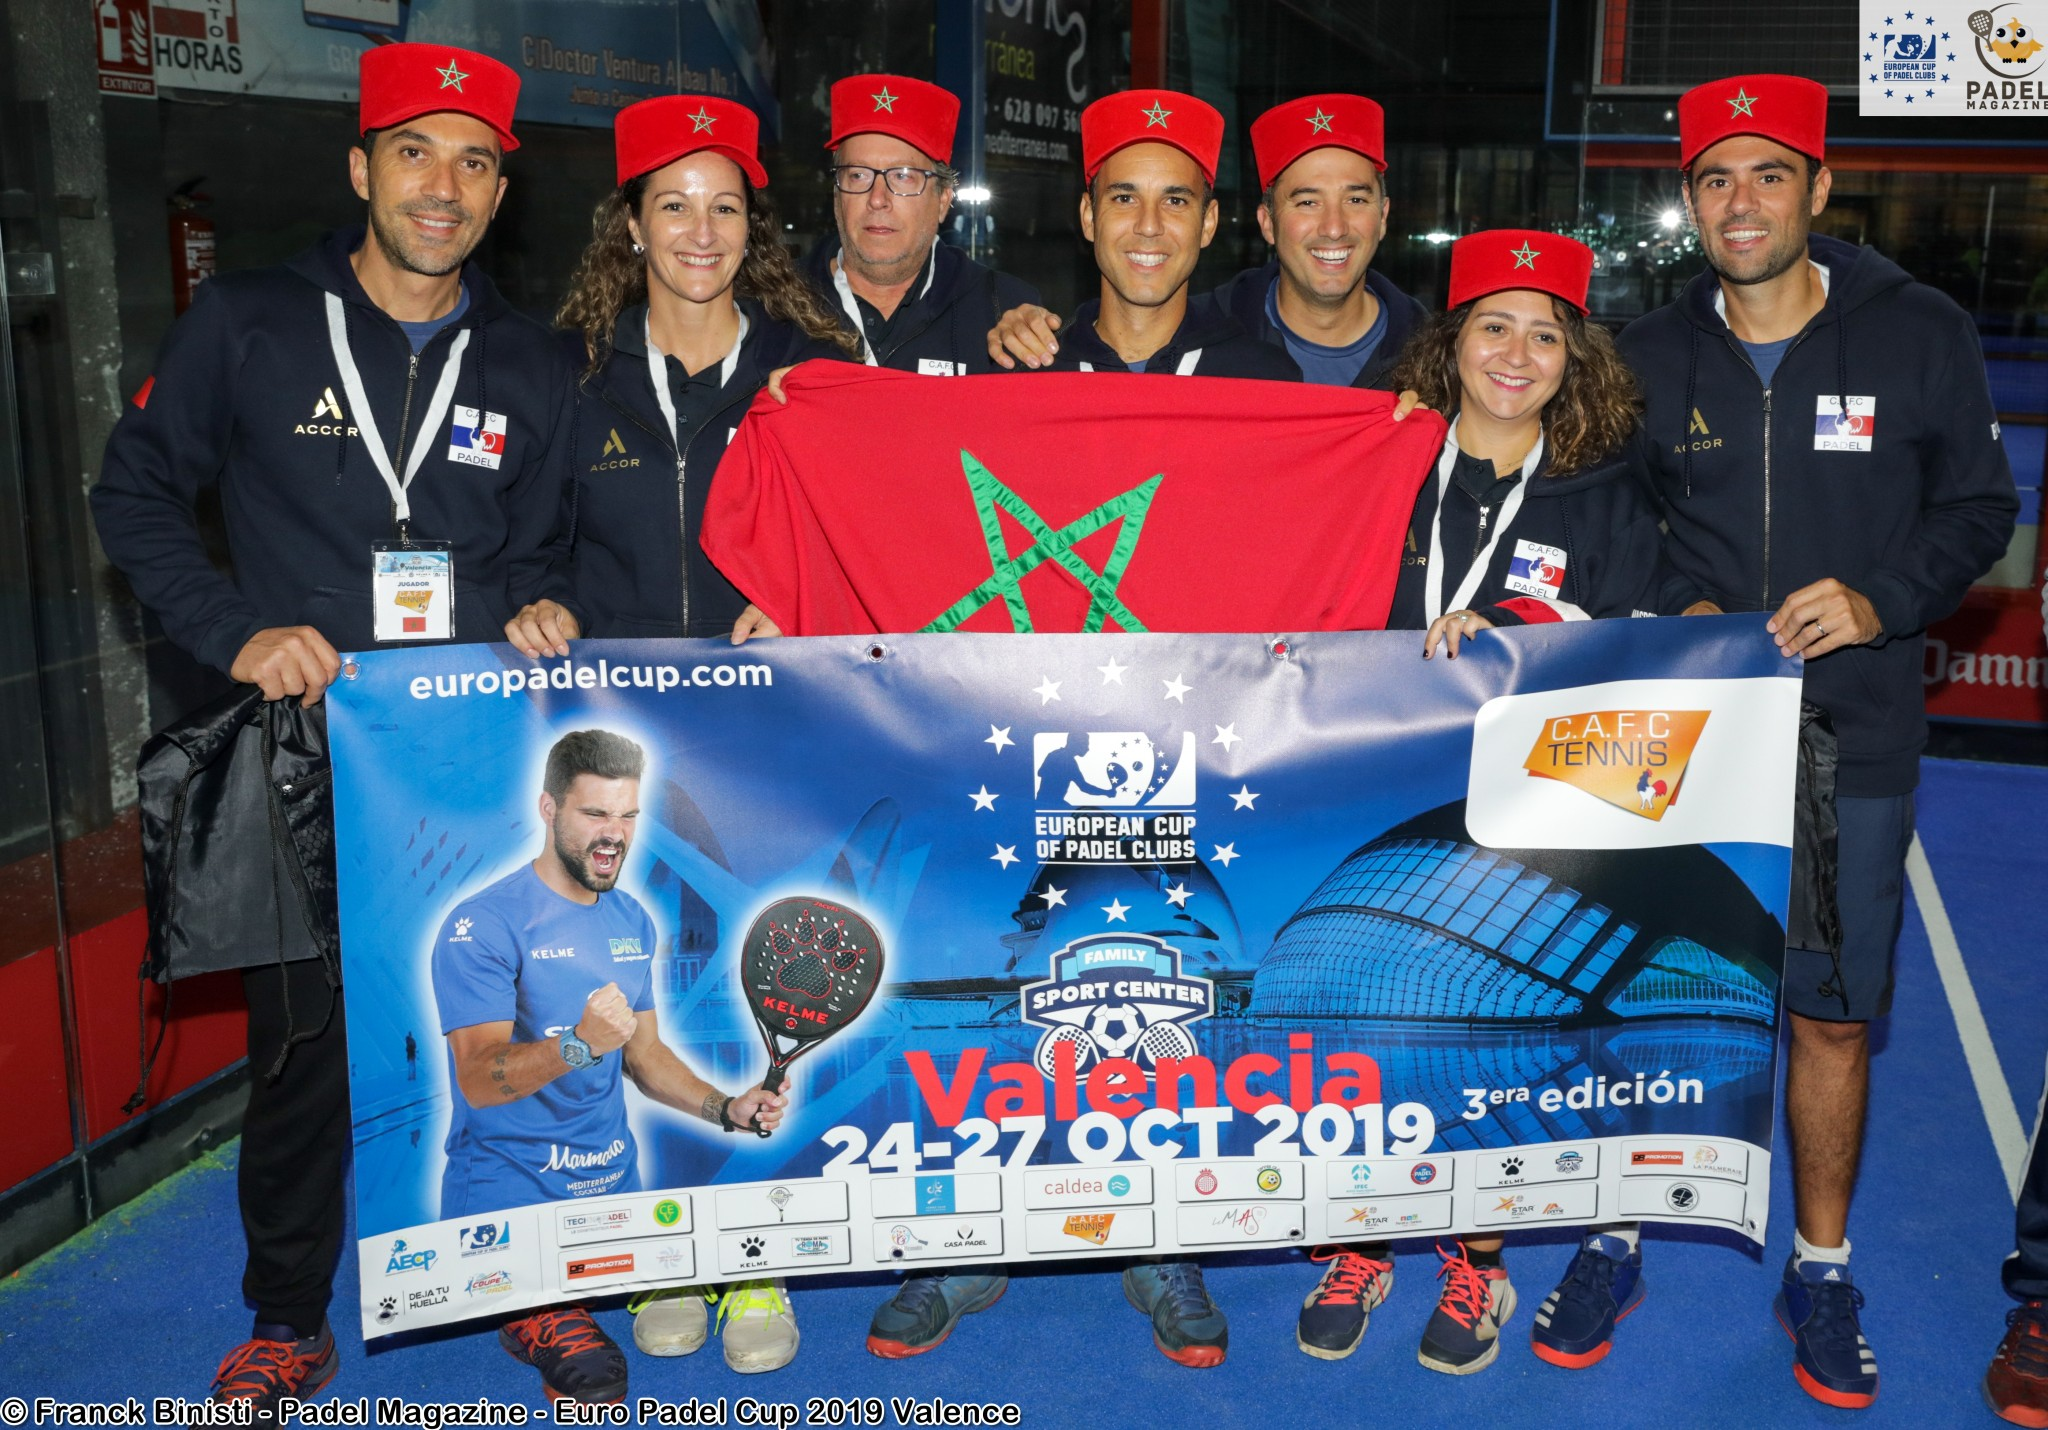 Le Maroc remporte son premier match international de padel